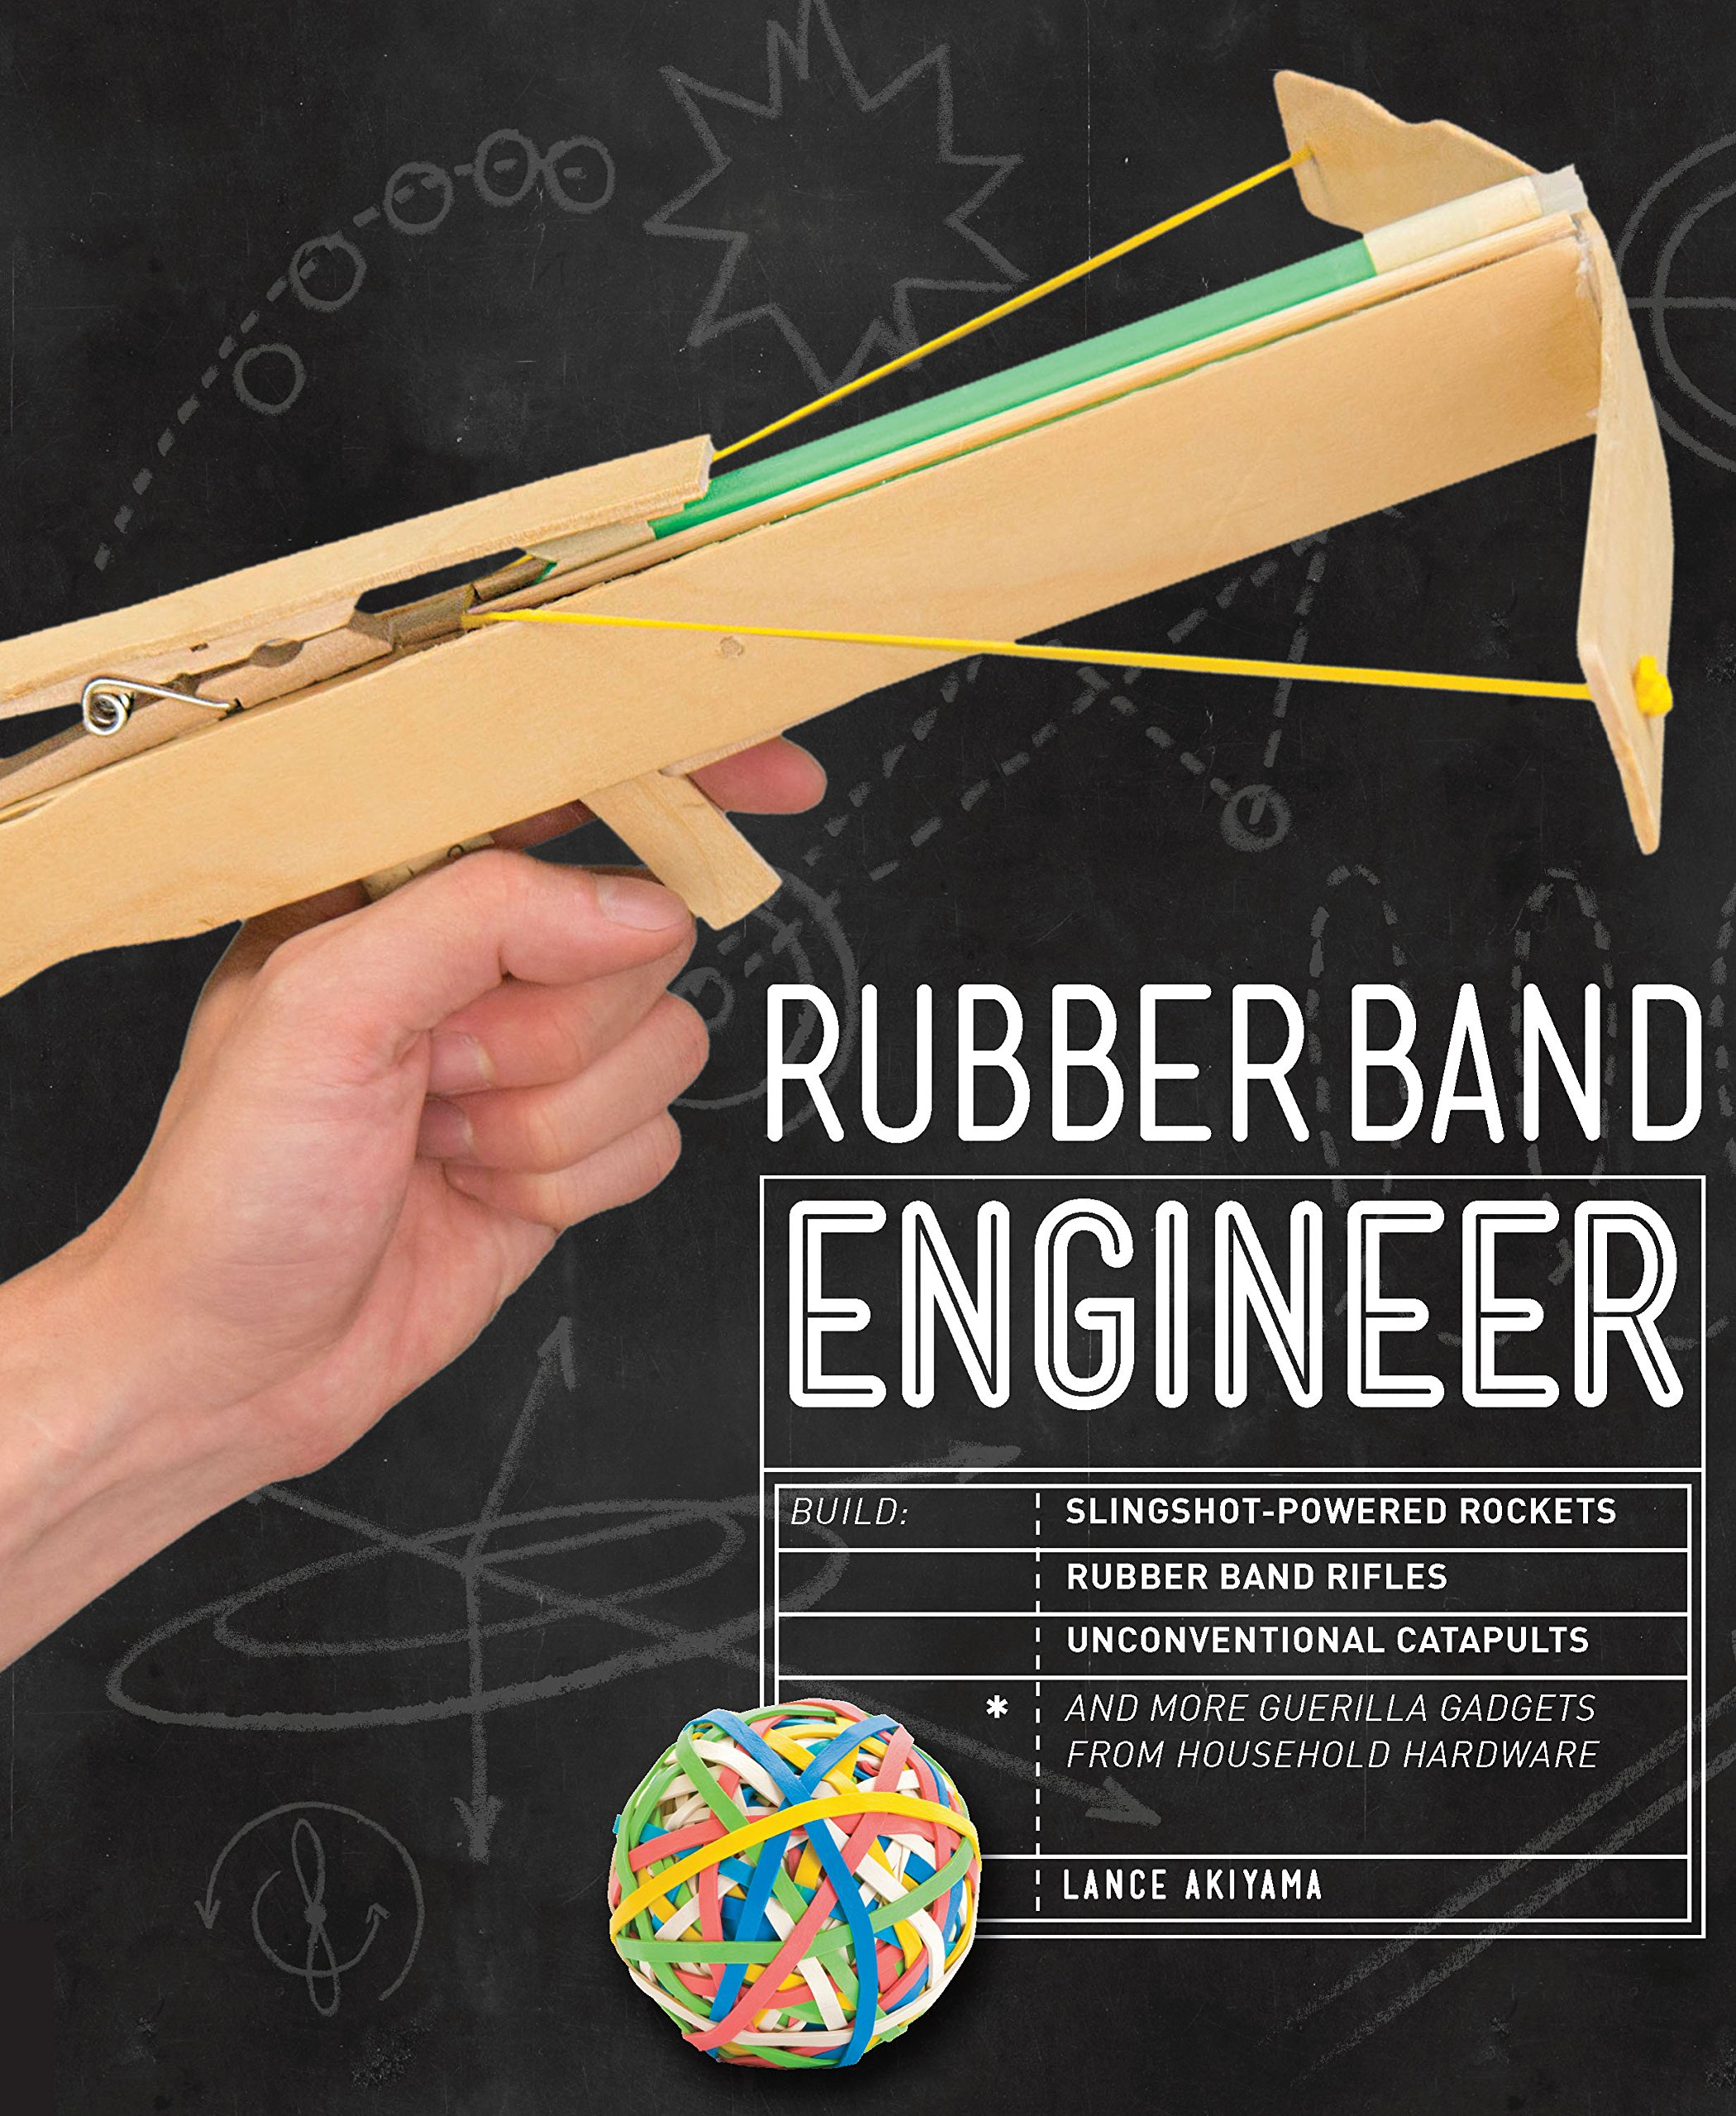 Rubber Band Engineer  Build Slingshot Powered Rockets Rubber Band Rifles Unconventional Catapults And More Guerrilla Gadgets From Household Hardware